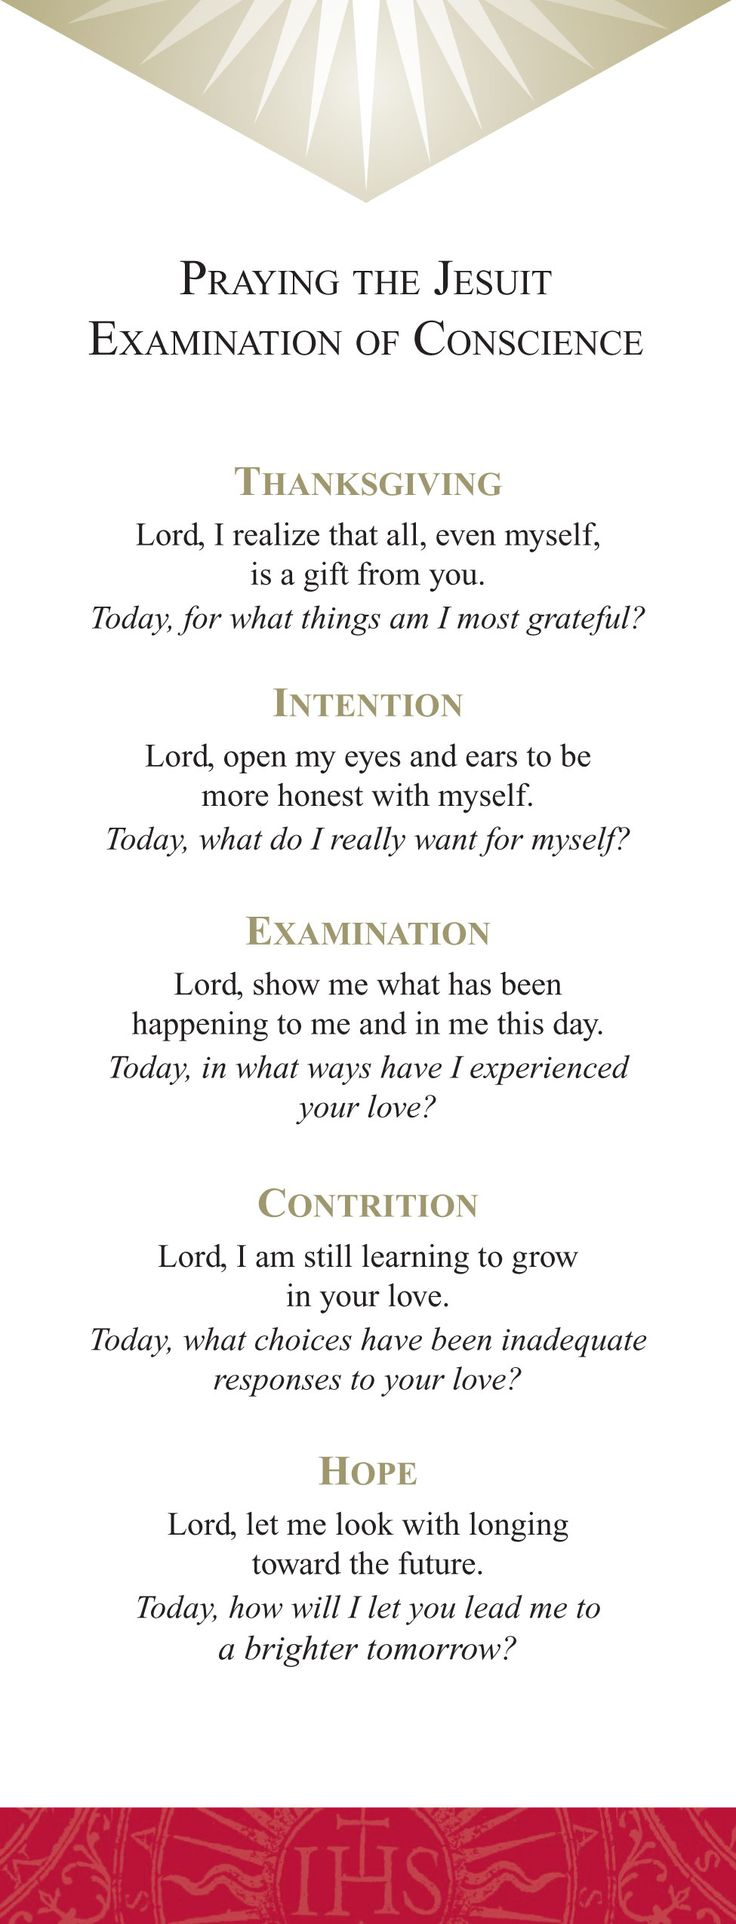 Ignatian examen prayer card - Google Search